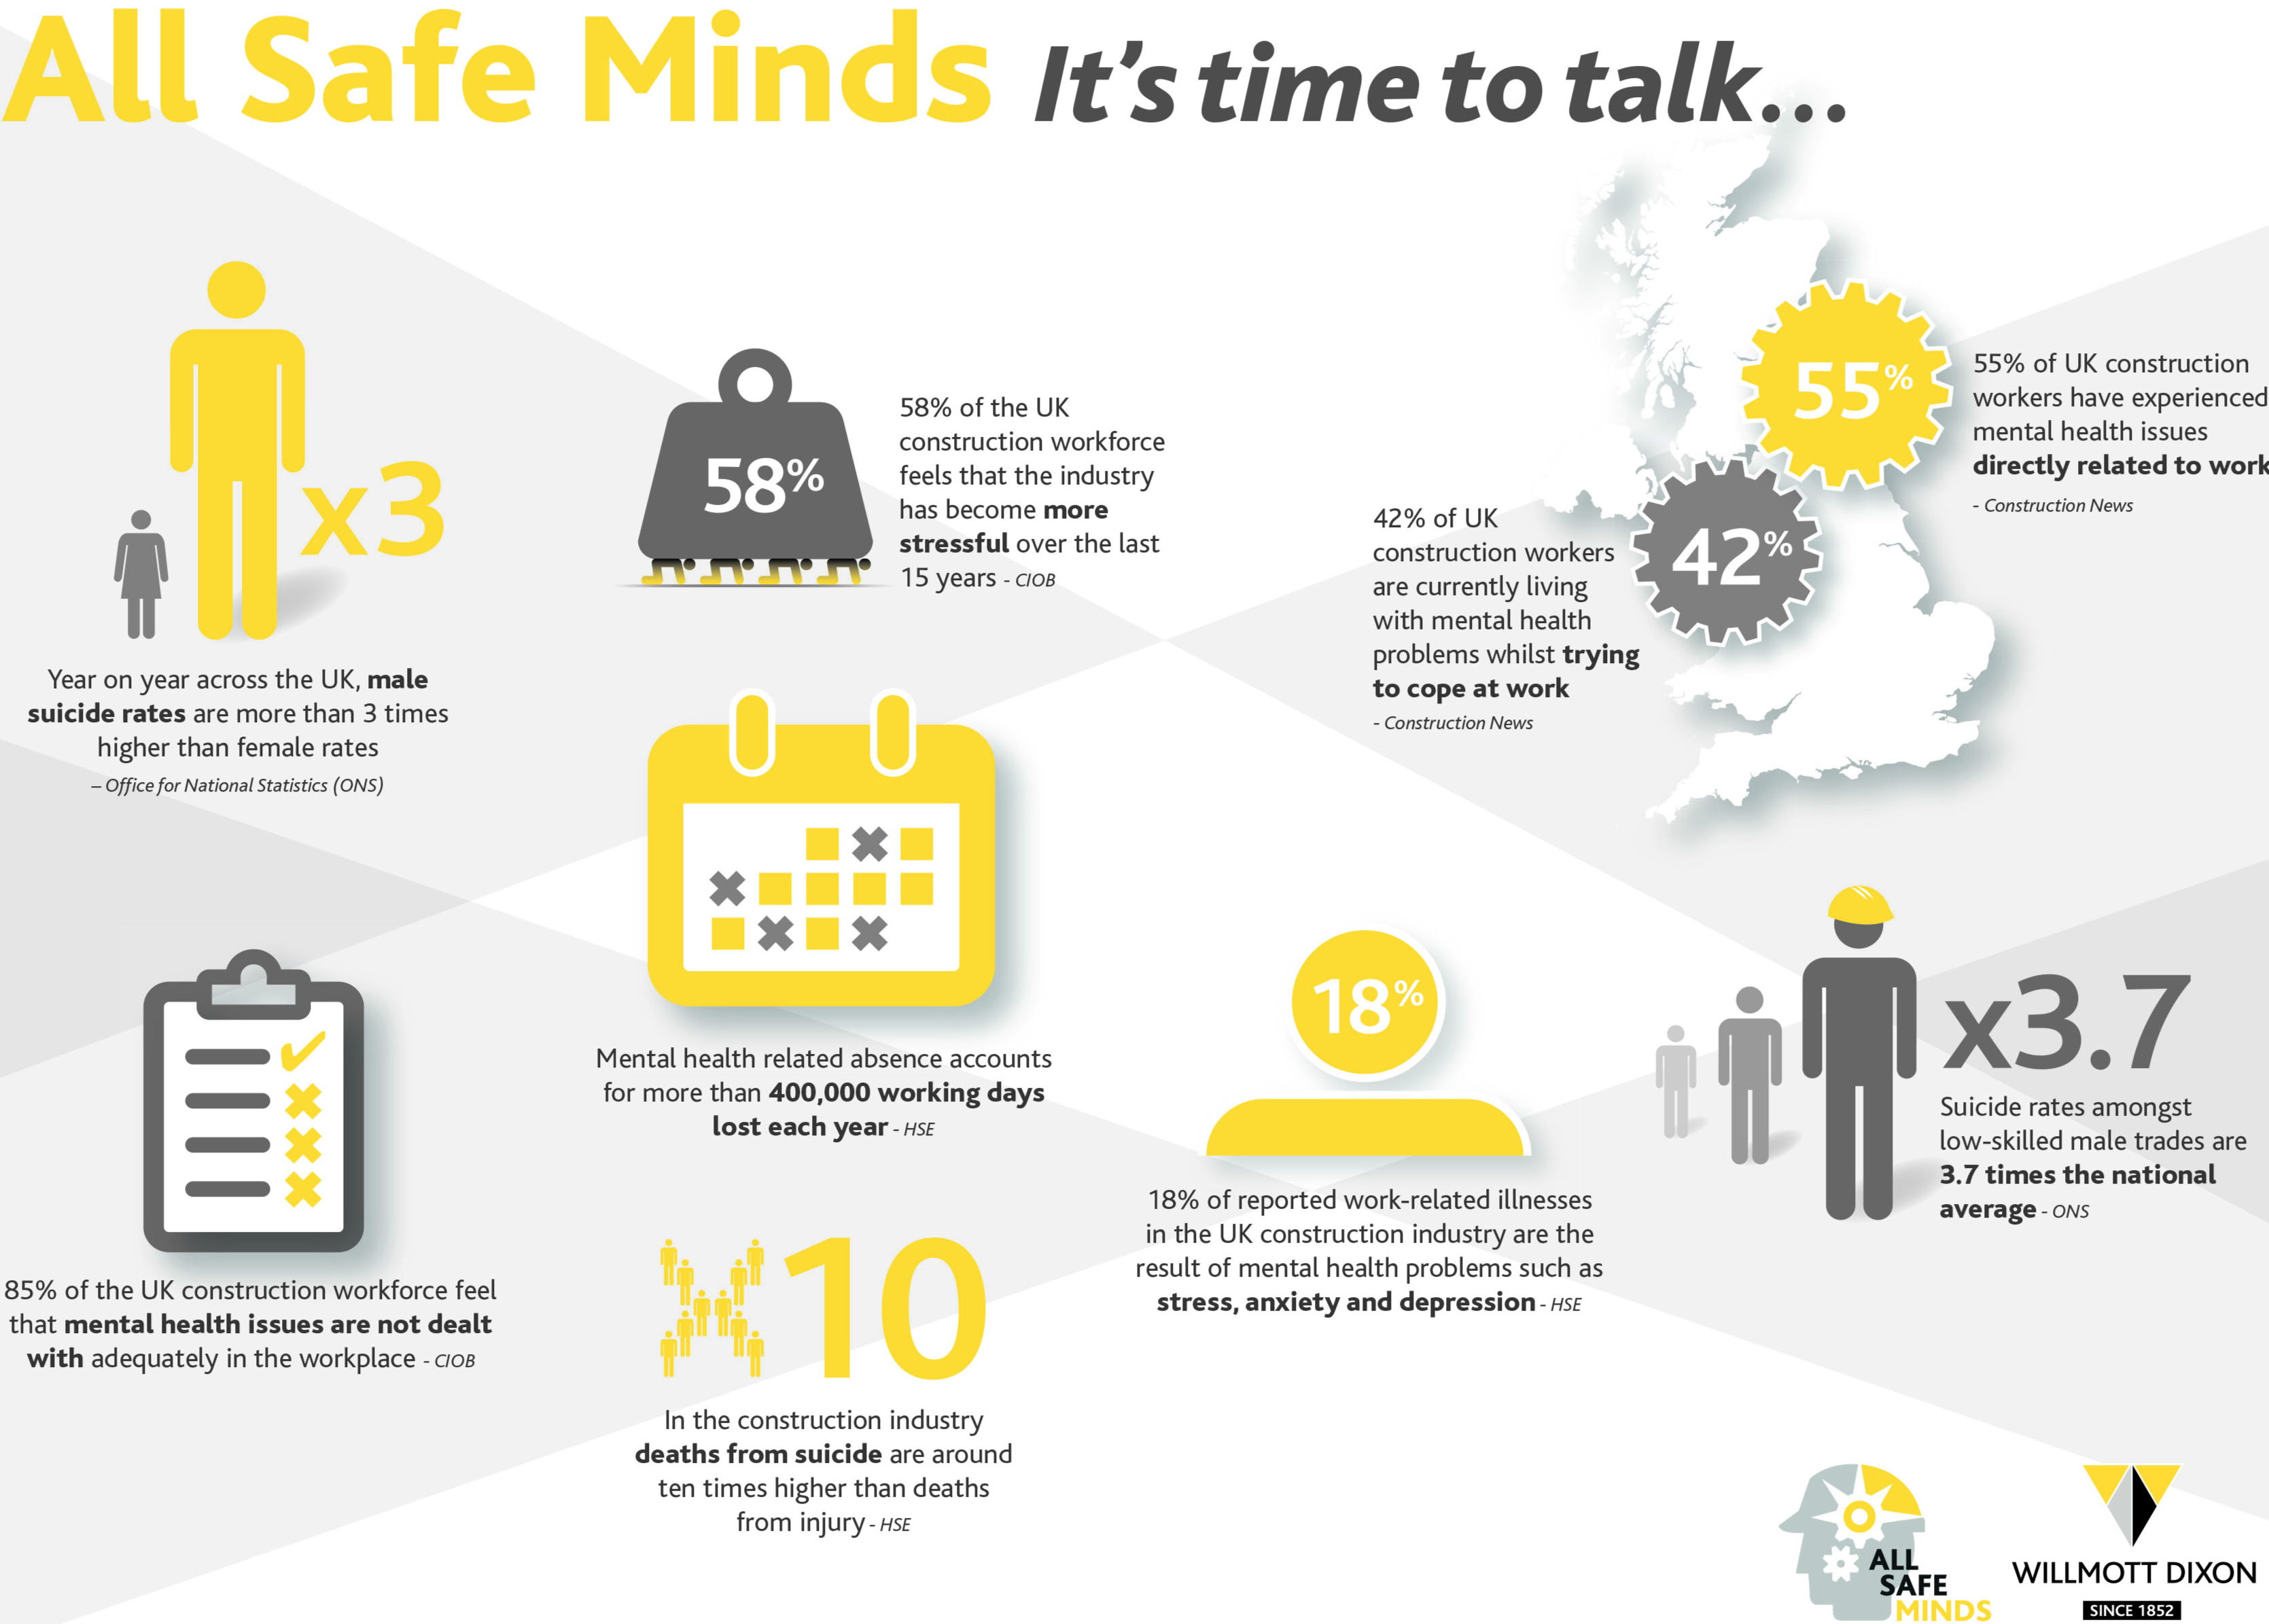 All Safe Minds infographic.jpg